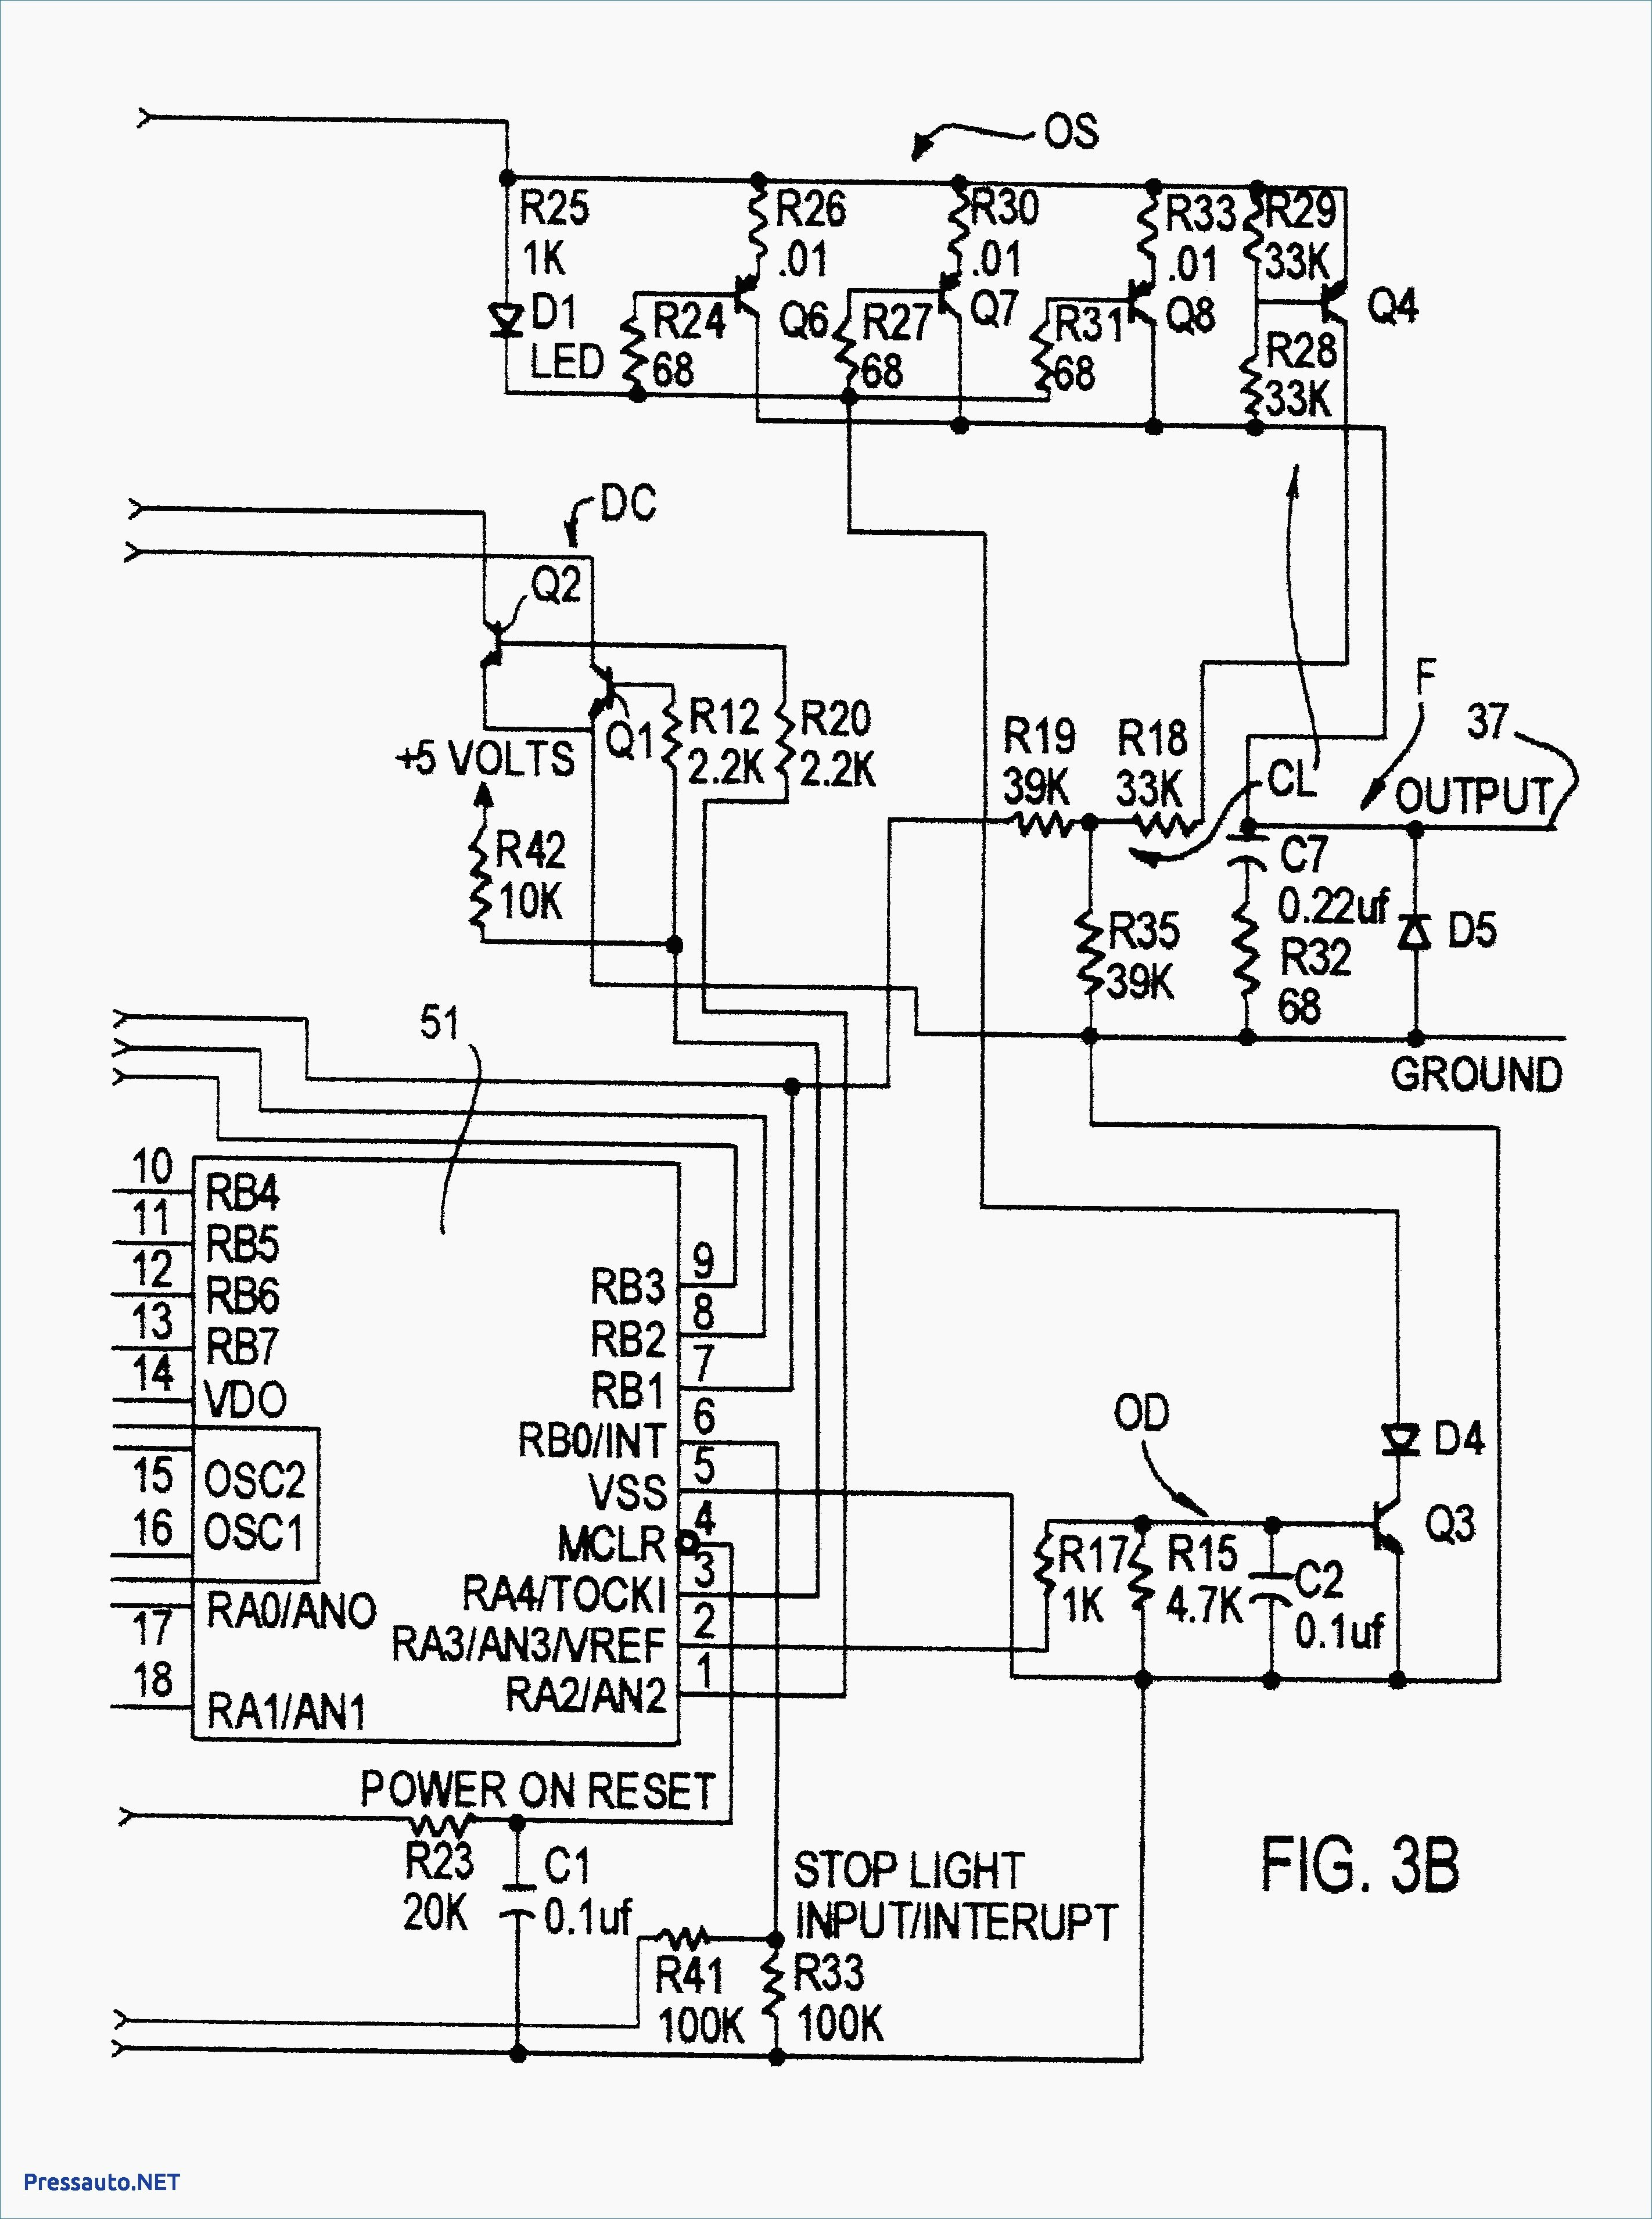 el camino wiring diagram 1965 chevelle wiring diagram